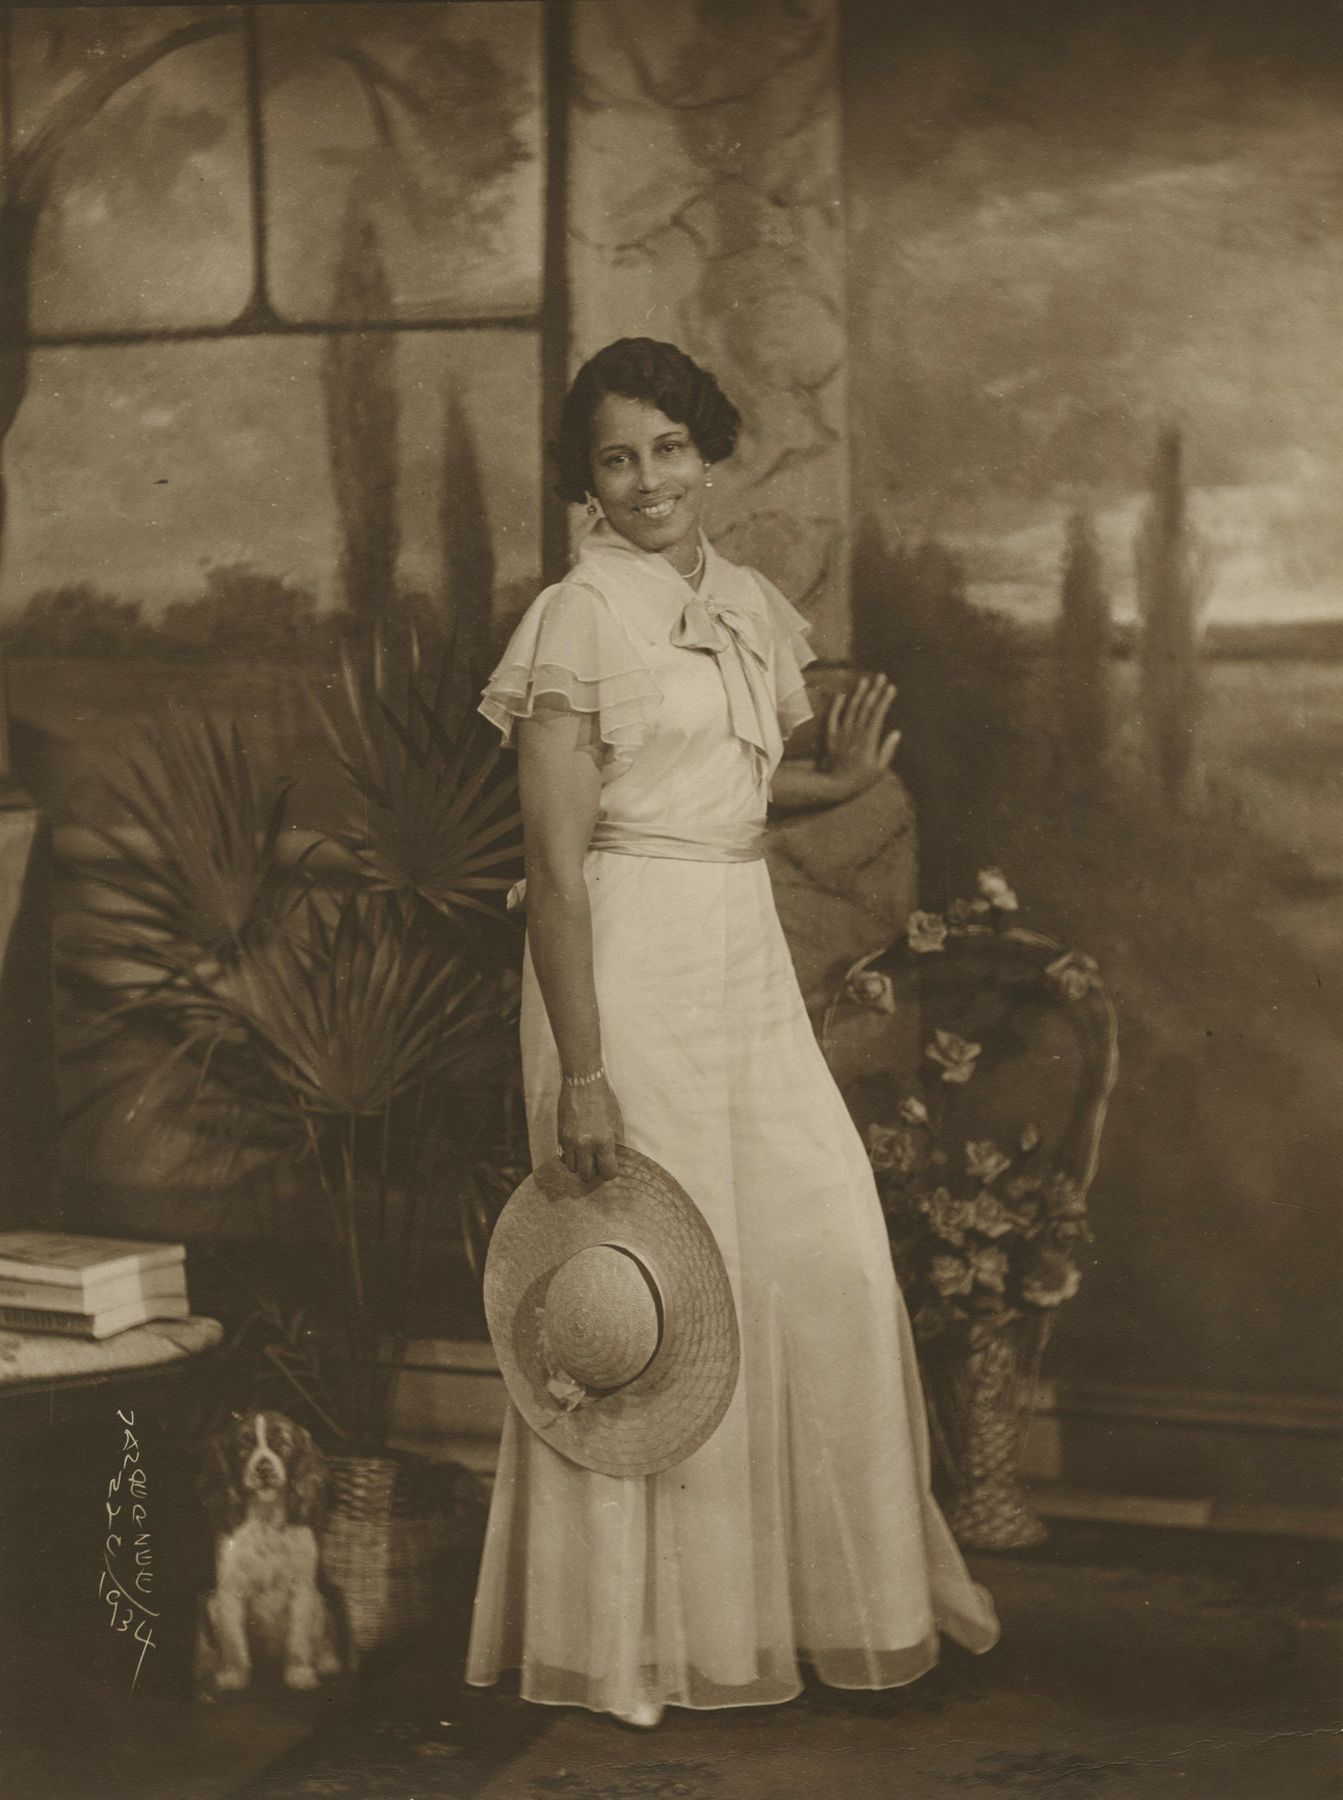 James Van Der Zee - Lady with Wide-brimmed Straw Hat, 1934 - Howard Greenberg Gallery